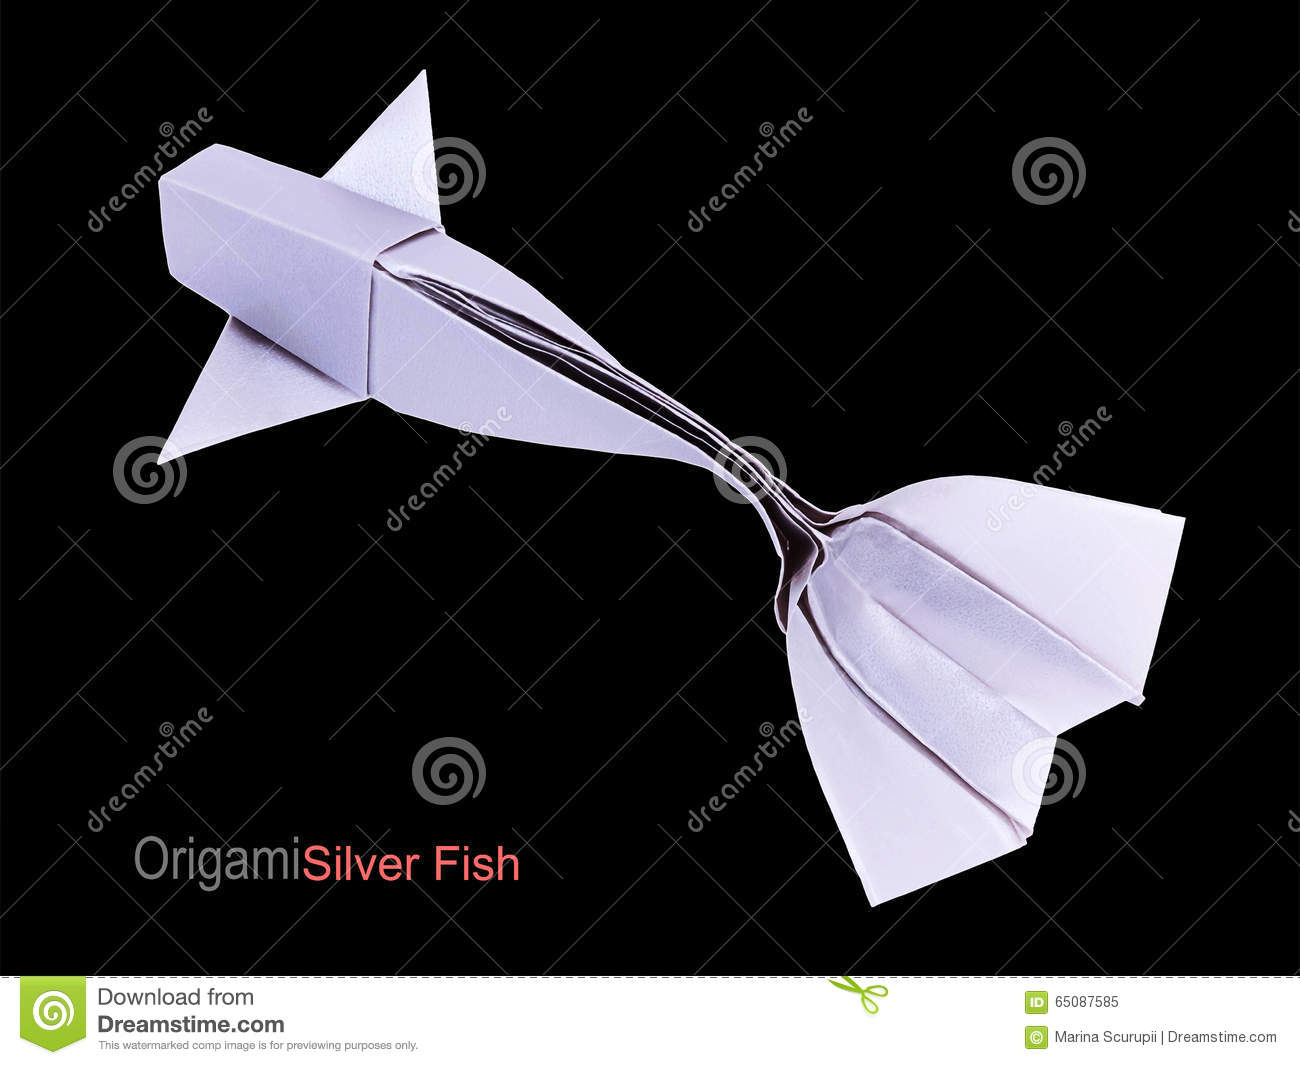 Origami Silver Fish Stock Image Image Of Life Activity 65087585